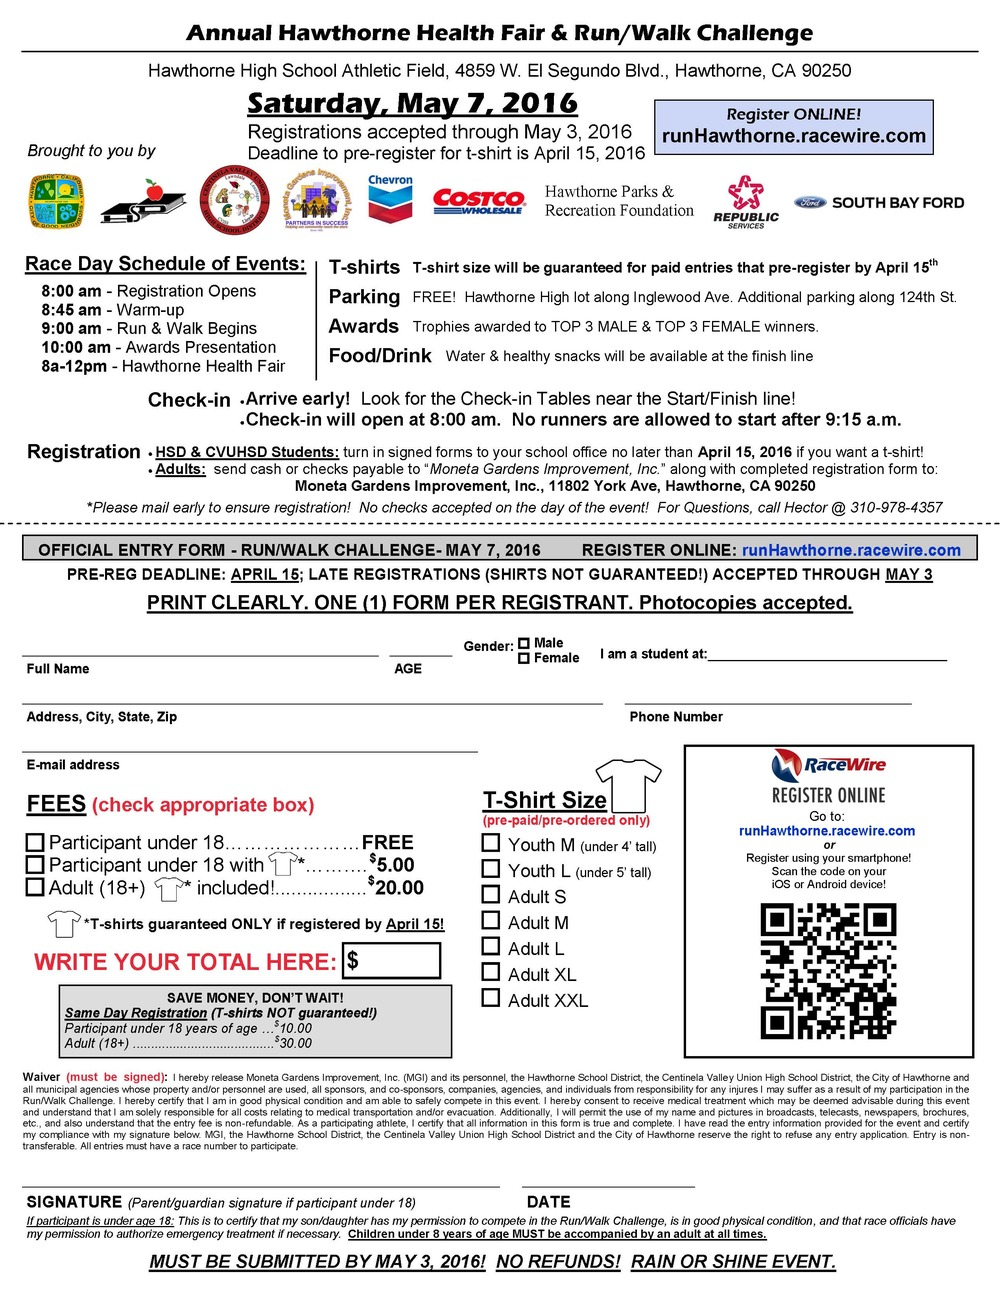 hr_events-2016 Run-Walk Entry Form_Page_1.jpg